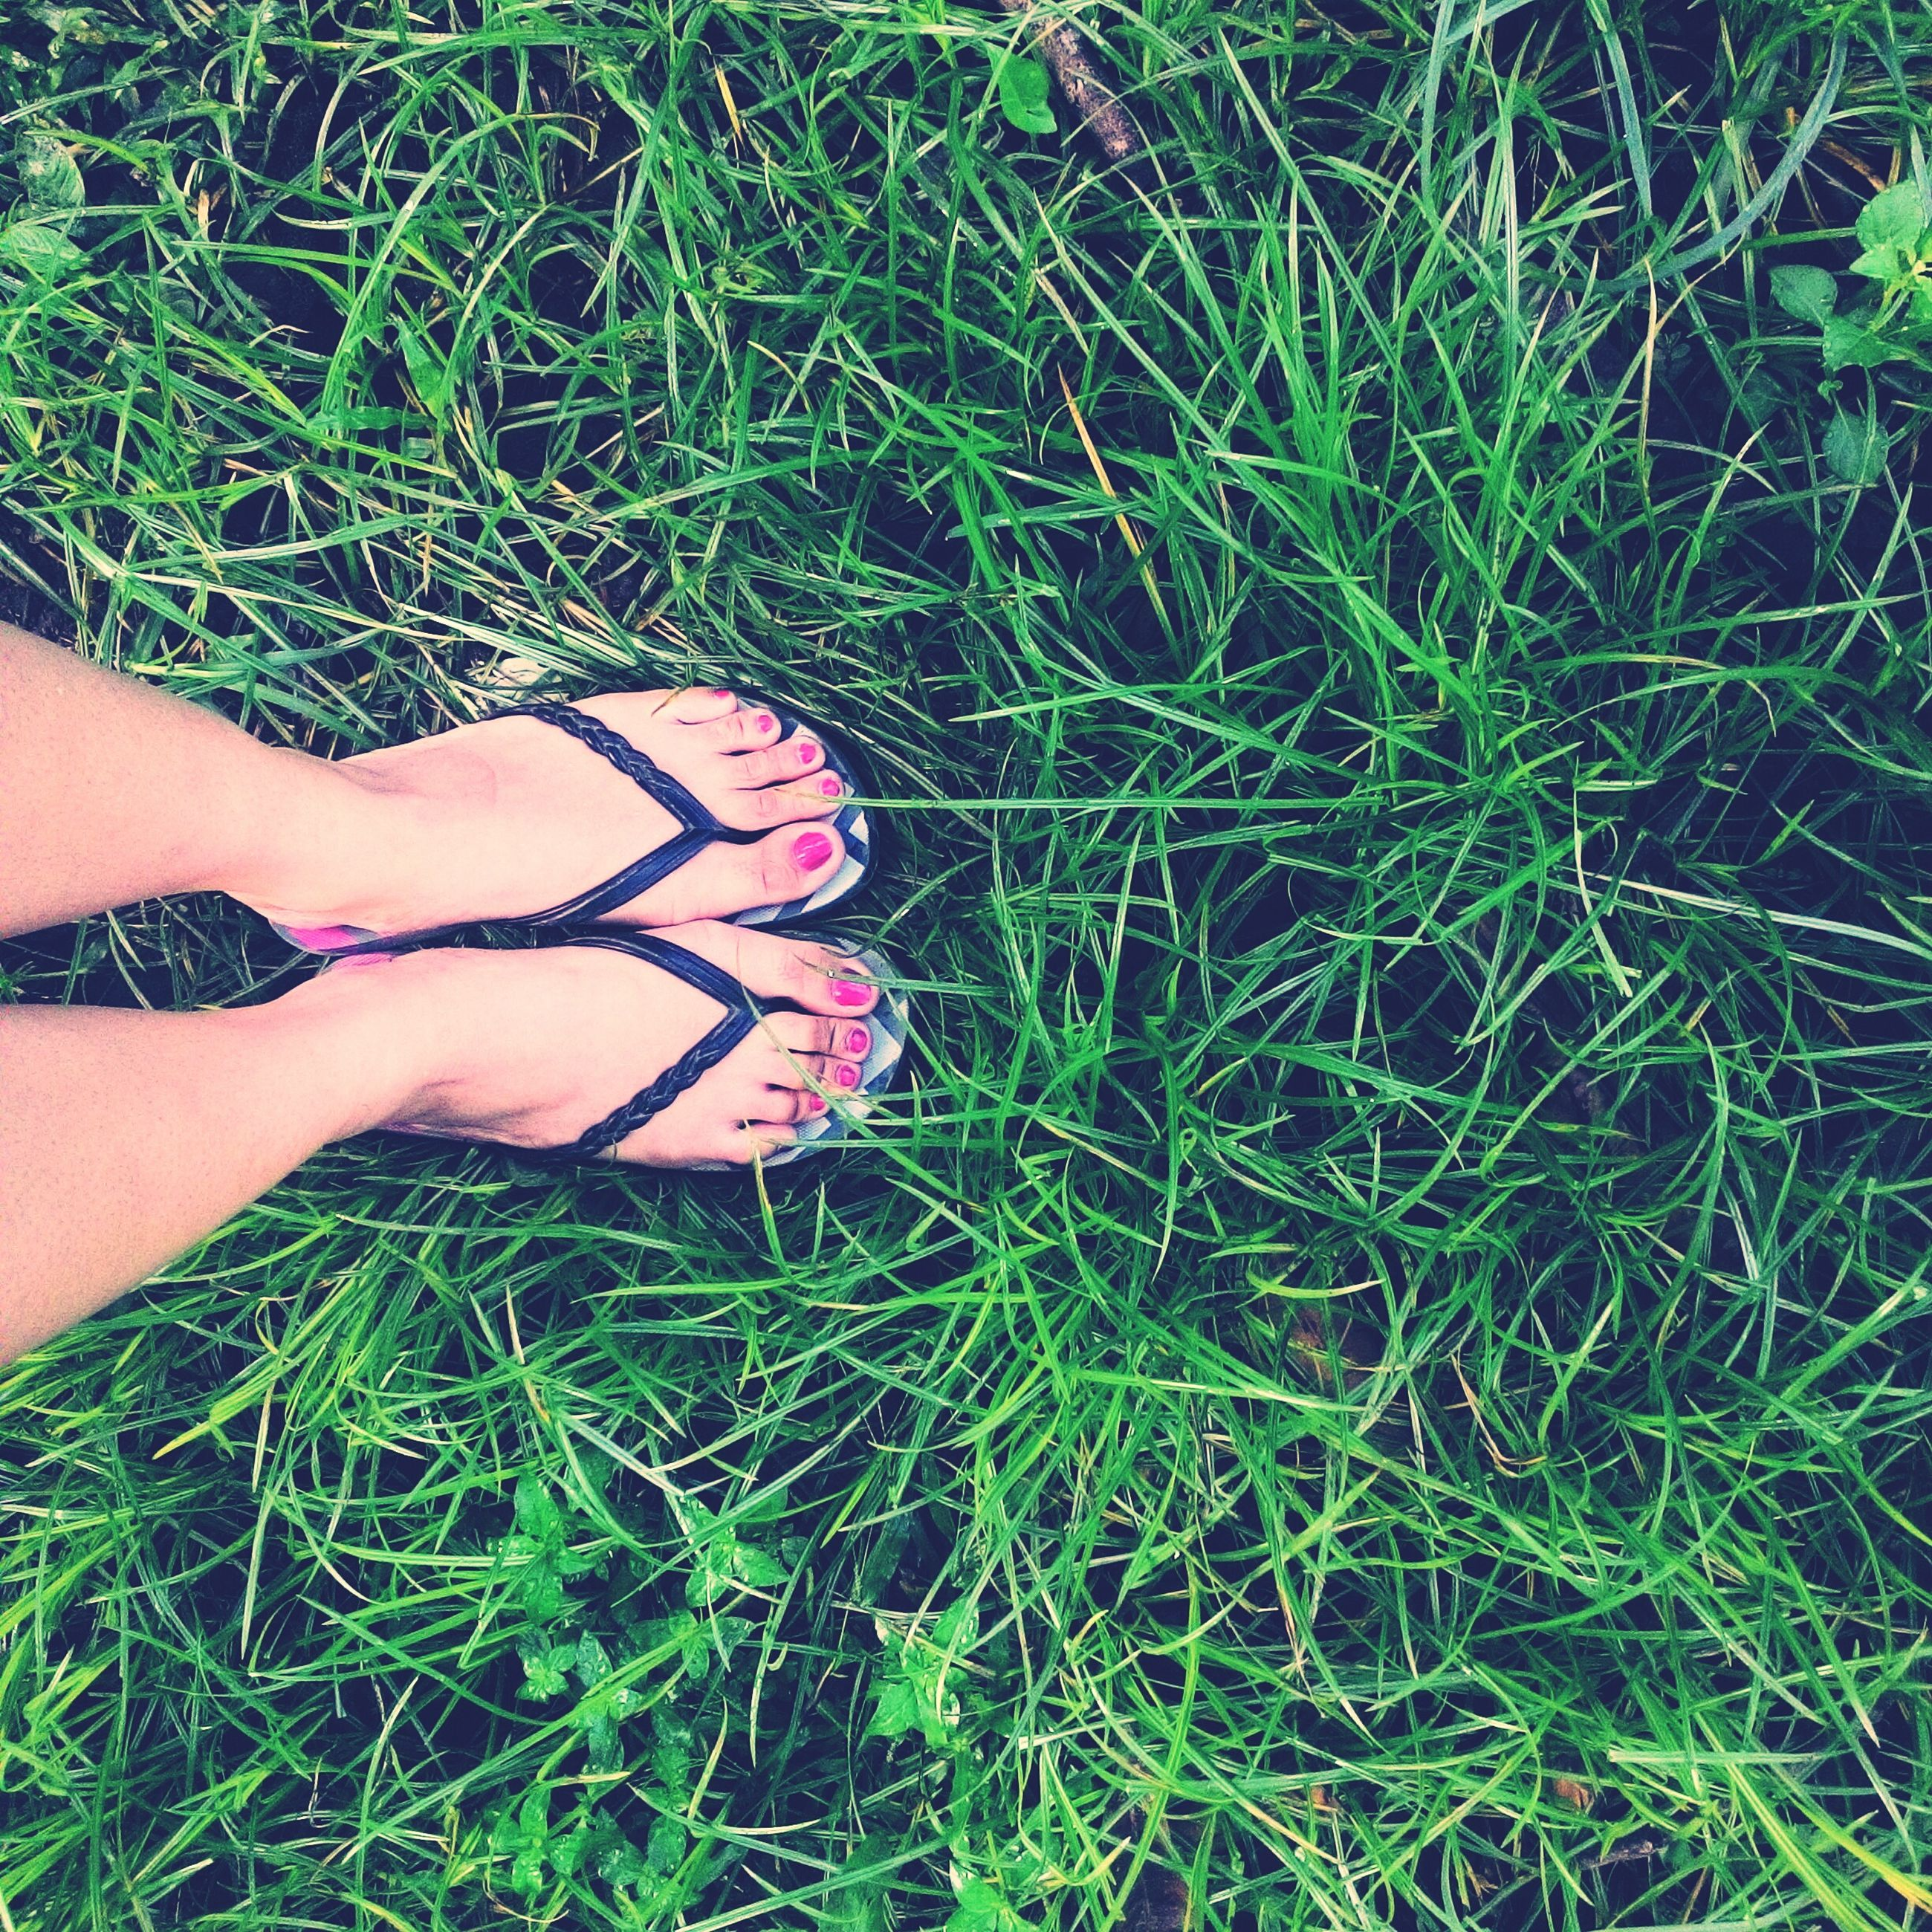 grass, low section, person, grassy, lifestyles, field, high angle view, leisure activity, shoe, standing, green color, human foot, personal perspective, relaxation, footwear, outdoors